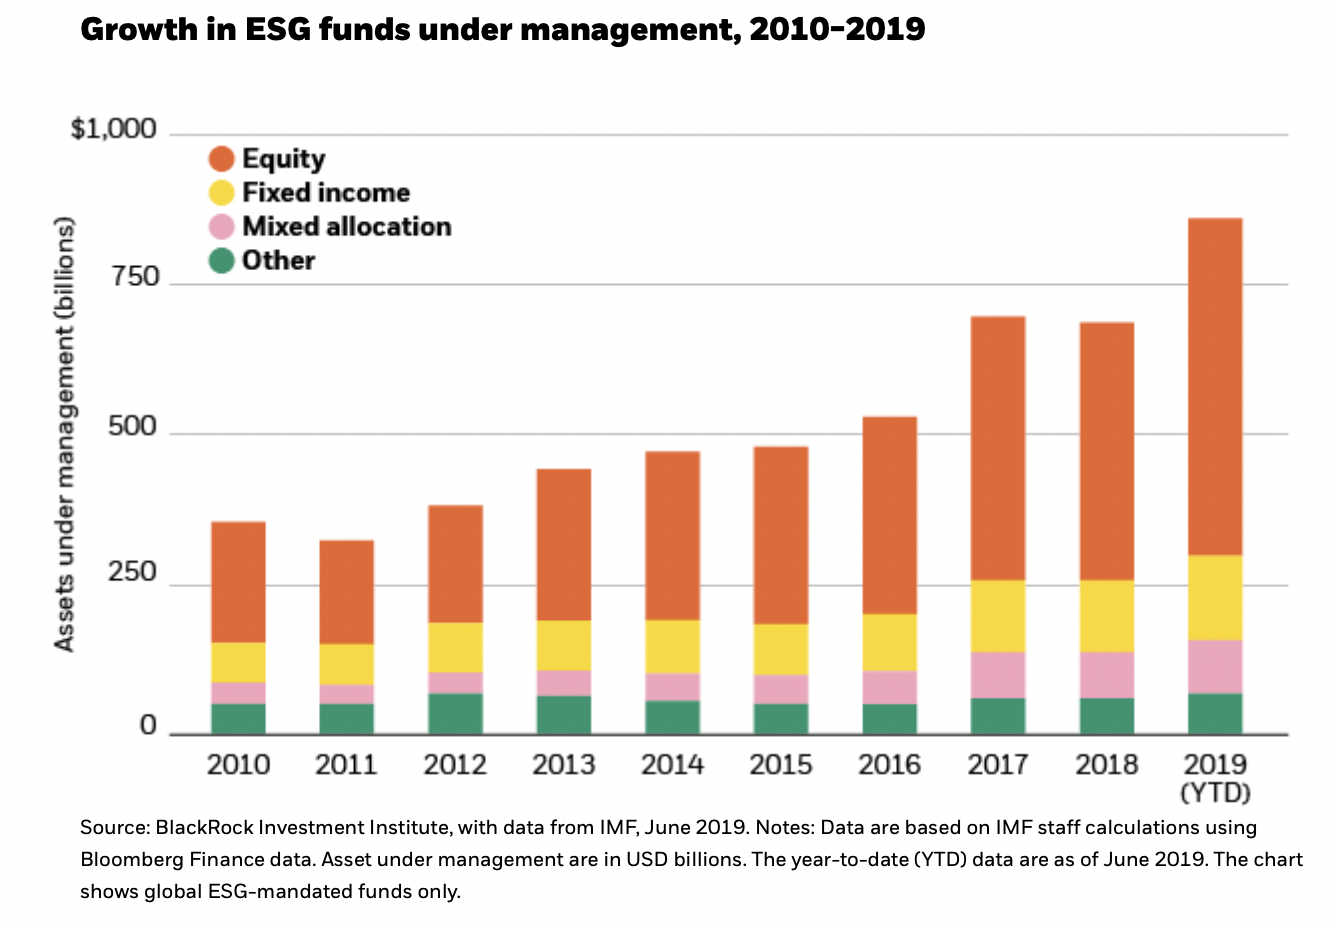 Growth of ESG funds